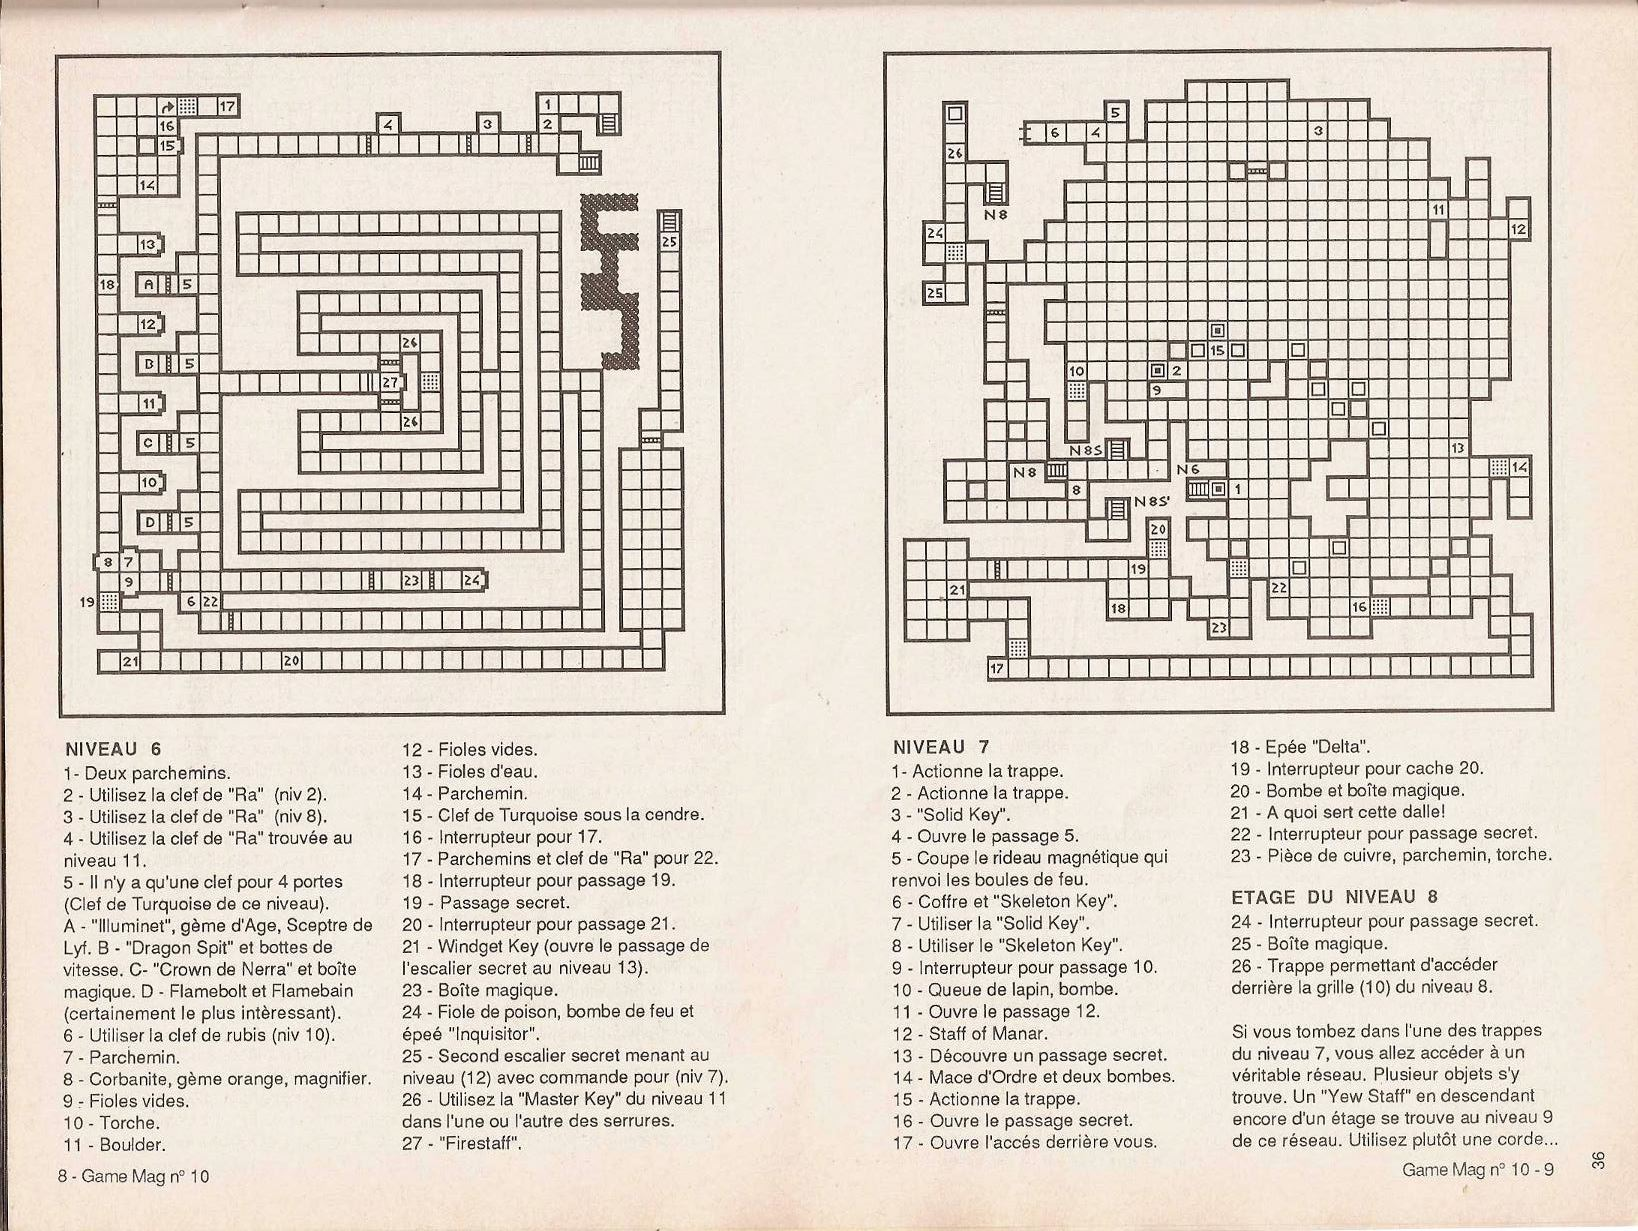 Dungeon Master Guide published in French magazine 'Game Mag', Issue #10 September 1988, Page 36